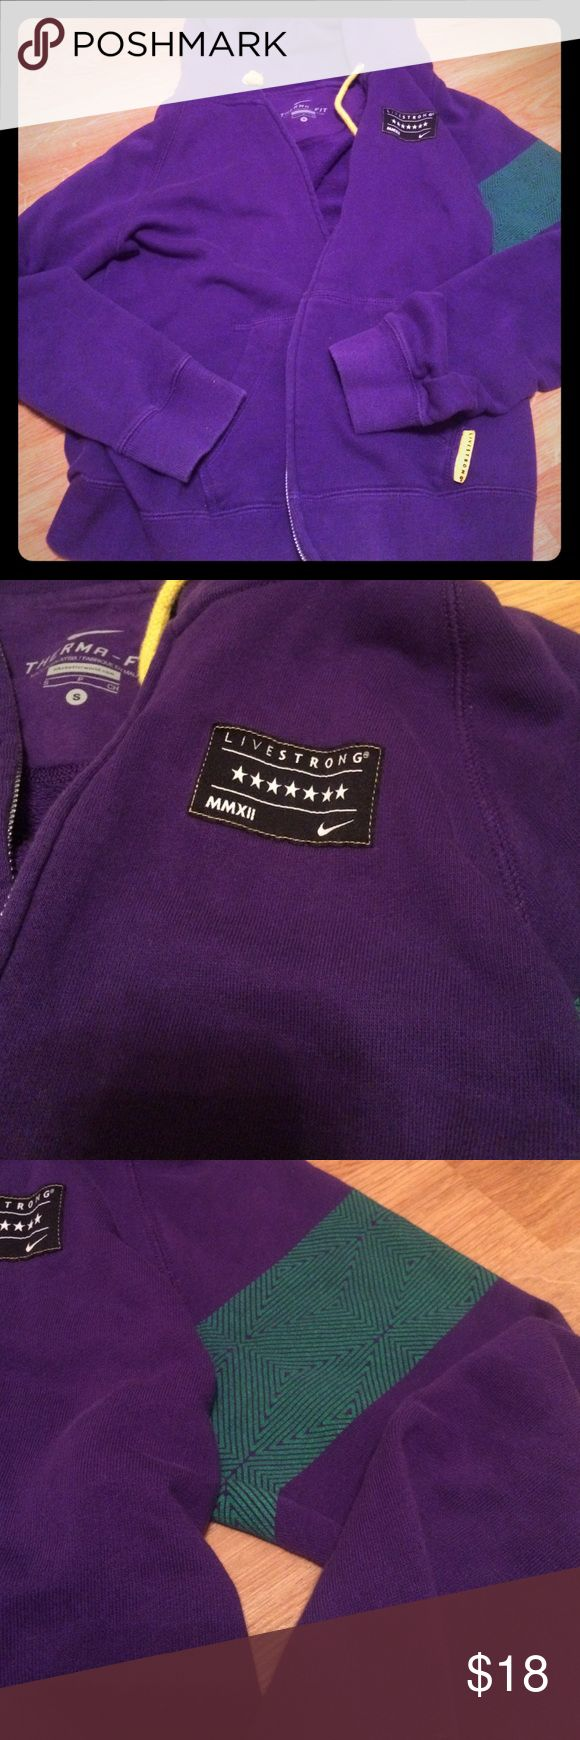 Nike hoodie Soft purple hoodie with terry cloth material  inside. Yellow drawstring and pocket decoration and green armband design on one sleeve. Worn once, like new. Nike Tops Sweatshirts & Hoodies